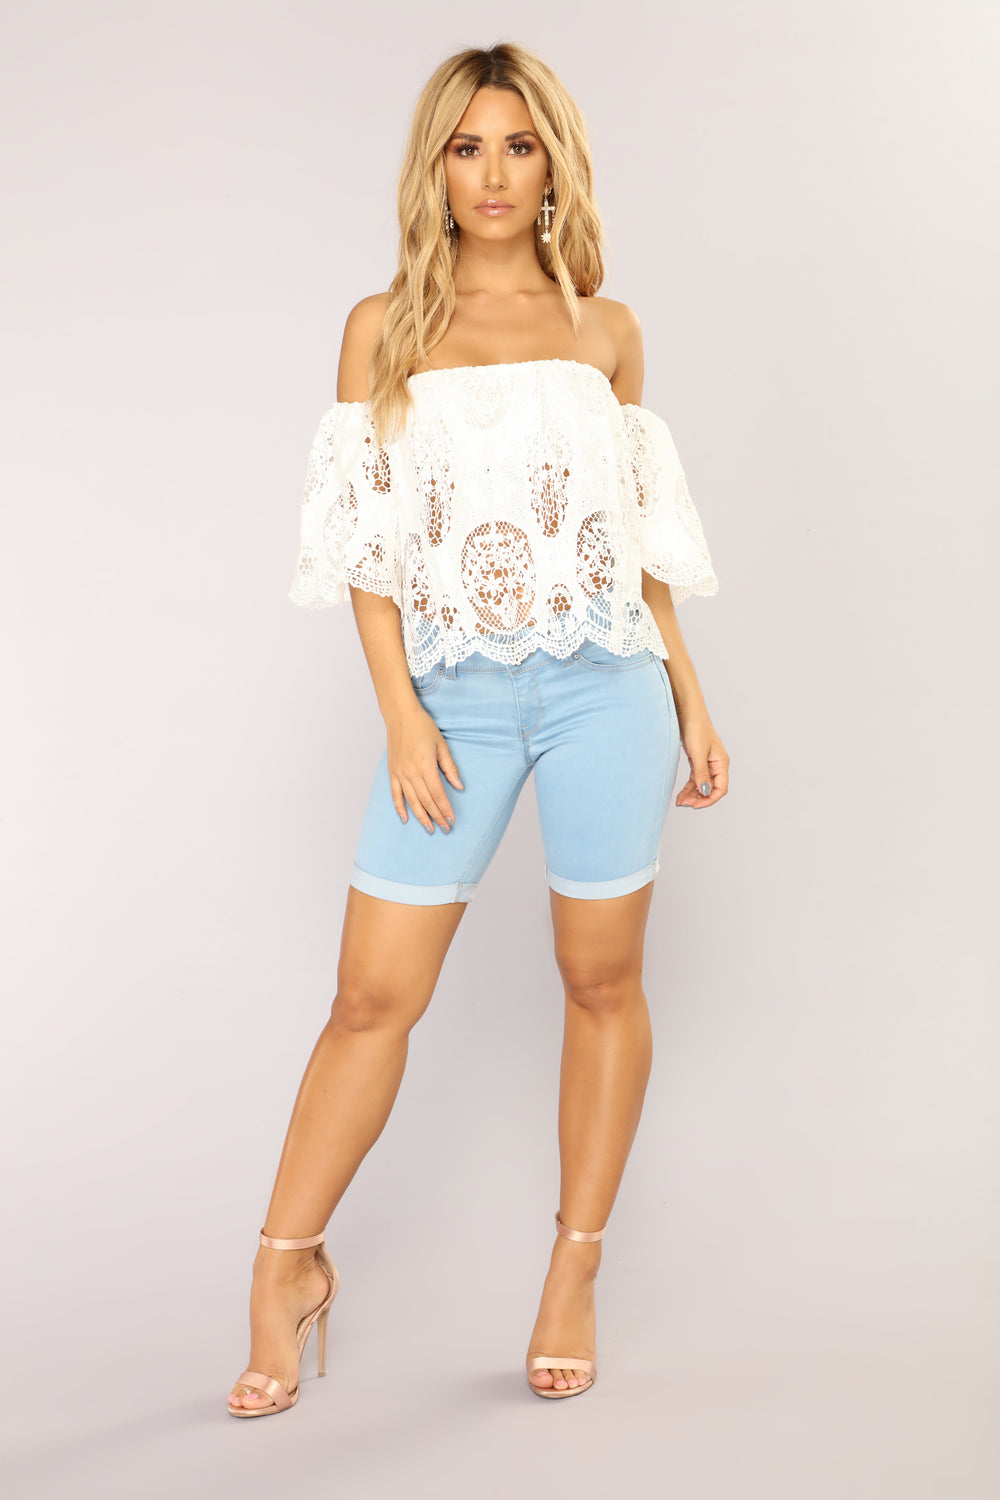 Catalina Booty Lifting Bermuda Shorts - Light Wash